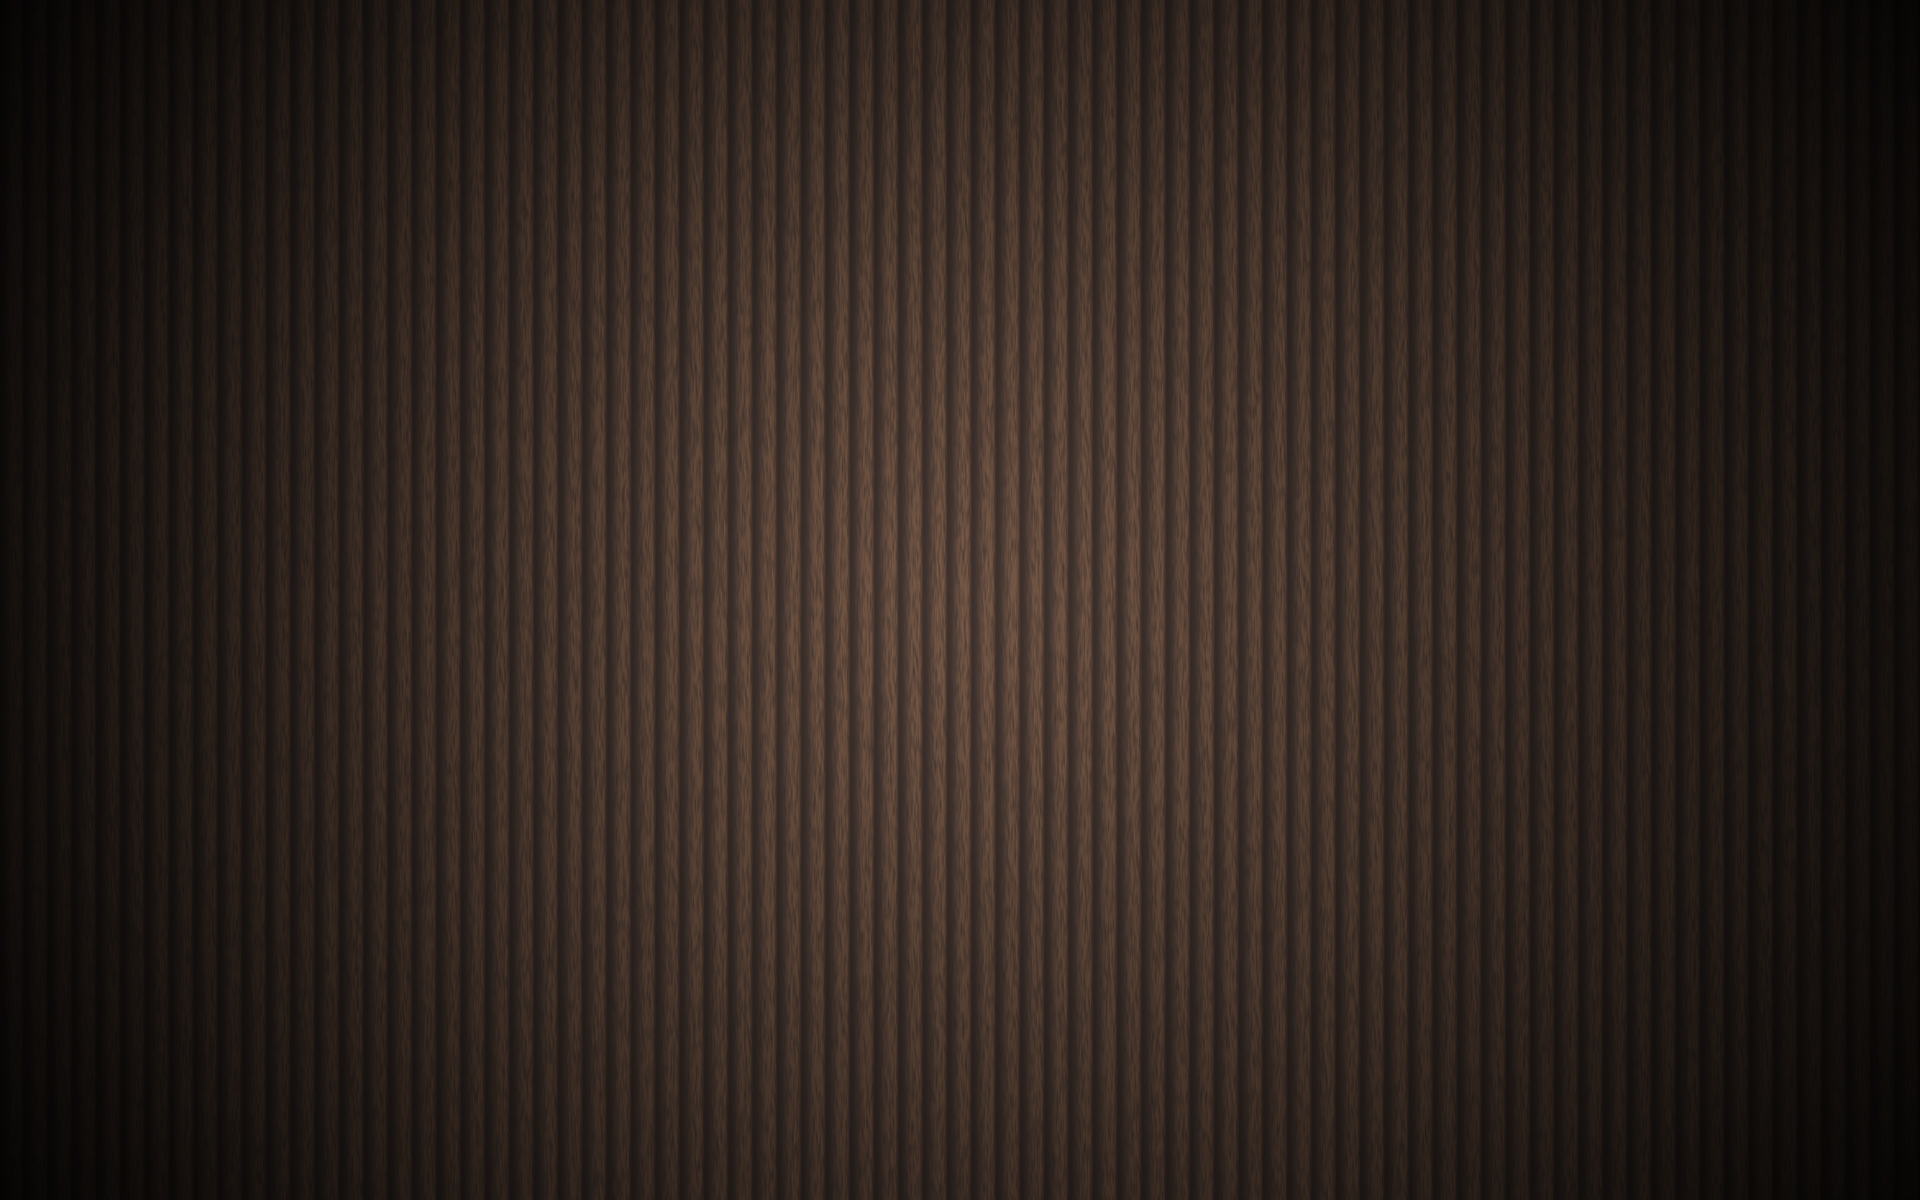 Brown Wallpaper Png - Minimalistic patterns striped texture brown wallpaper | 1920x1200 ...